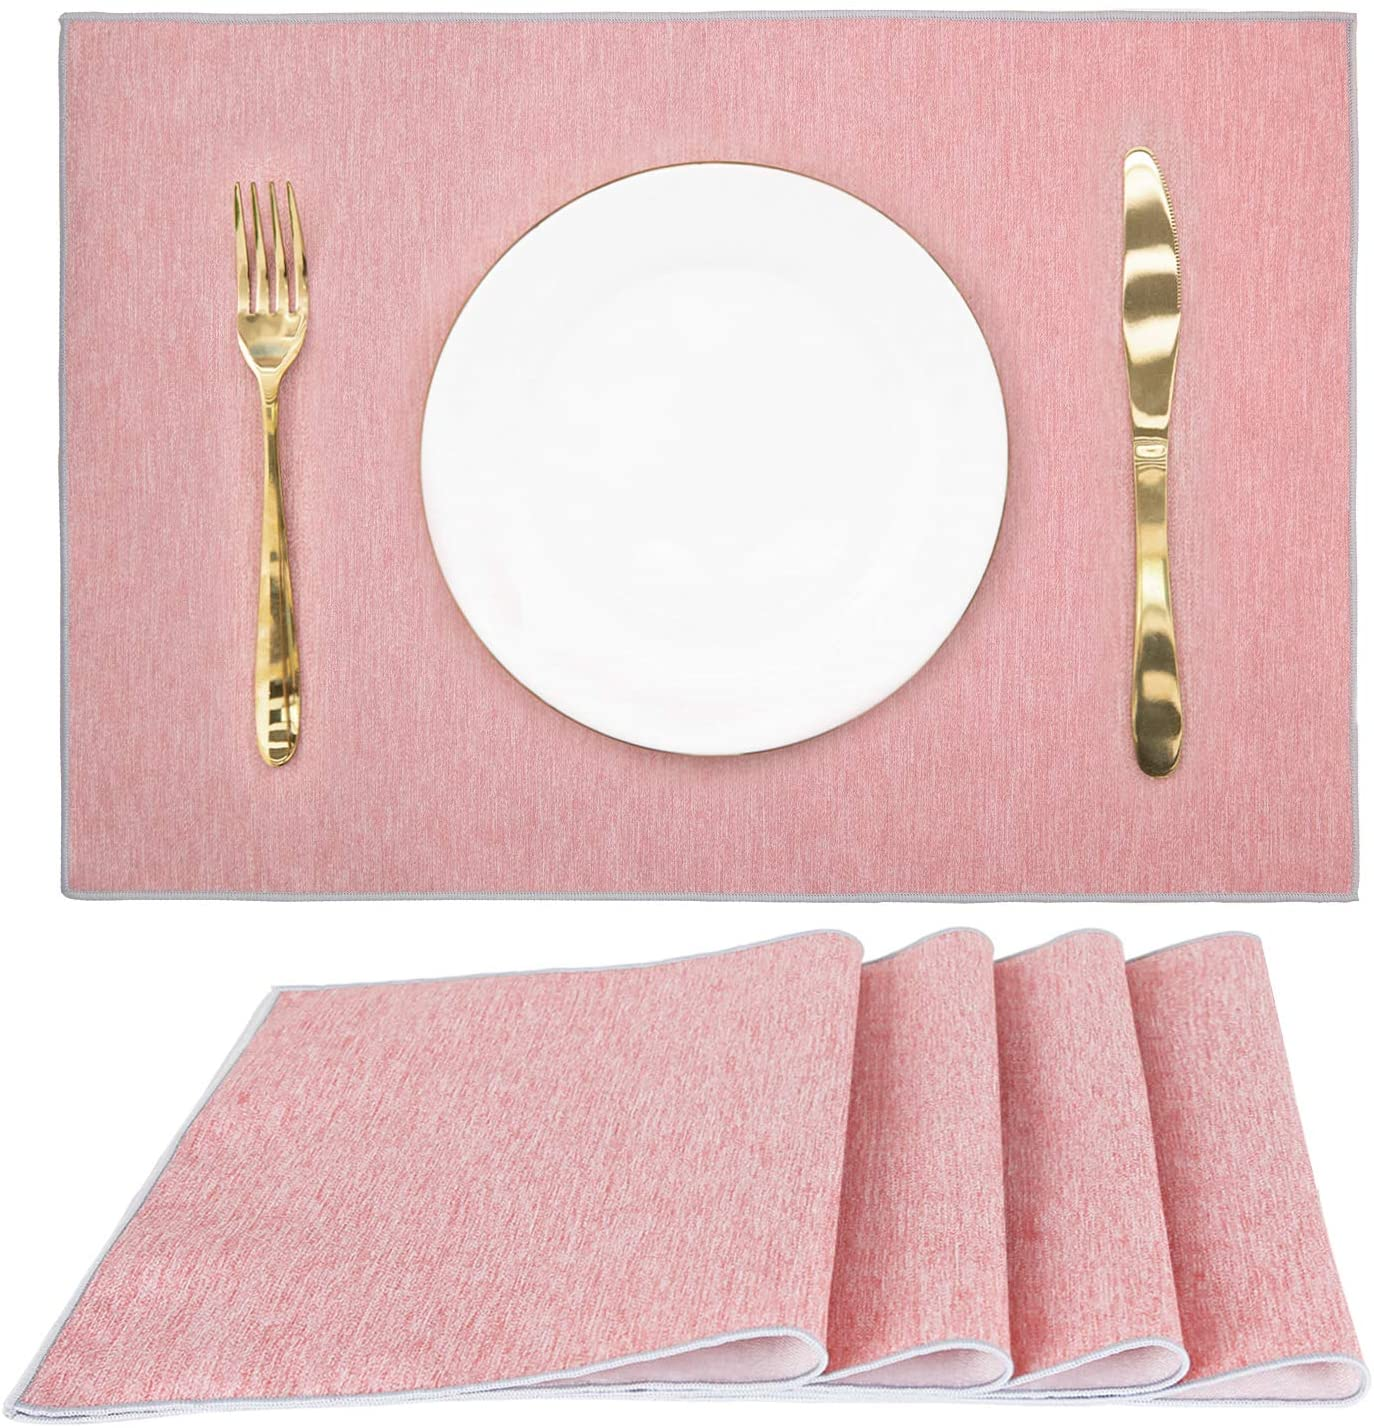 CaliTime Placemats 4pcs 12 X 18 Inches Polyester Heat-Resistant Non-Slip Waterproof Plate Cup Mats for Kitchen Dining Table Dusty Pink